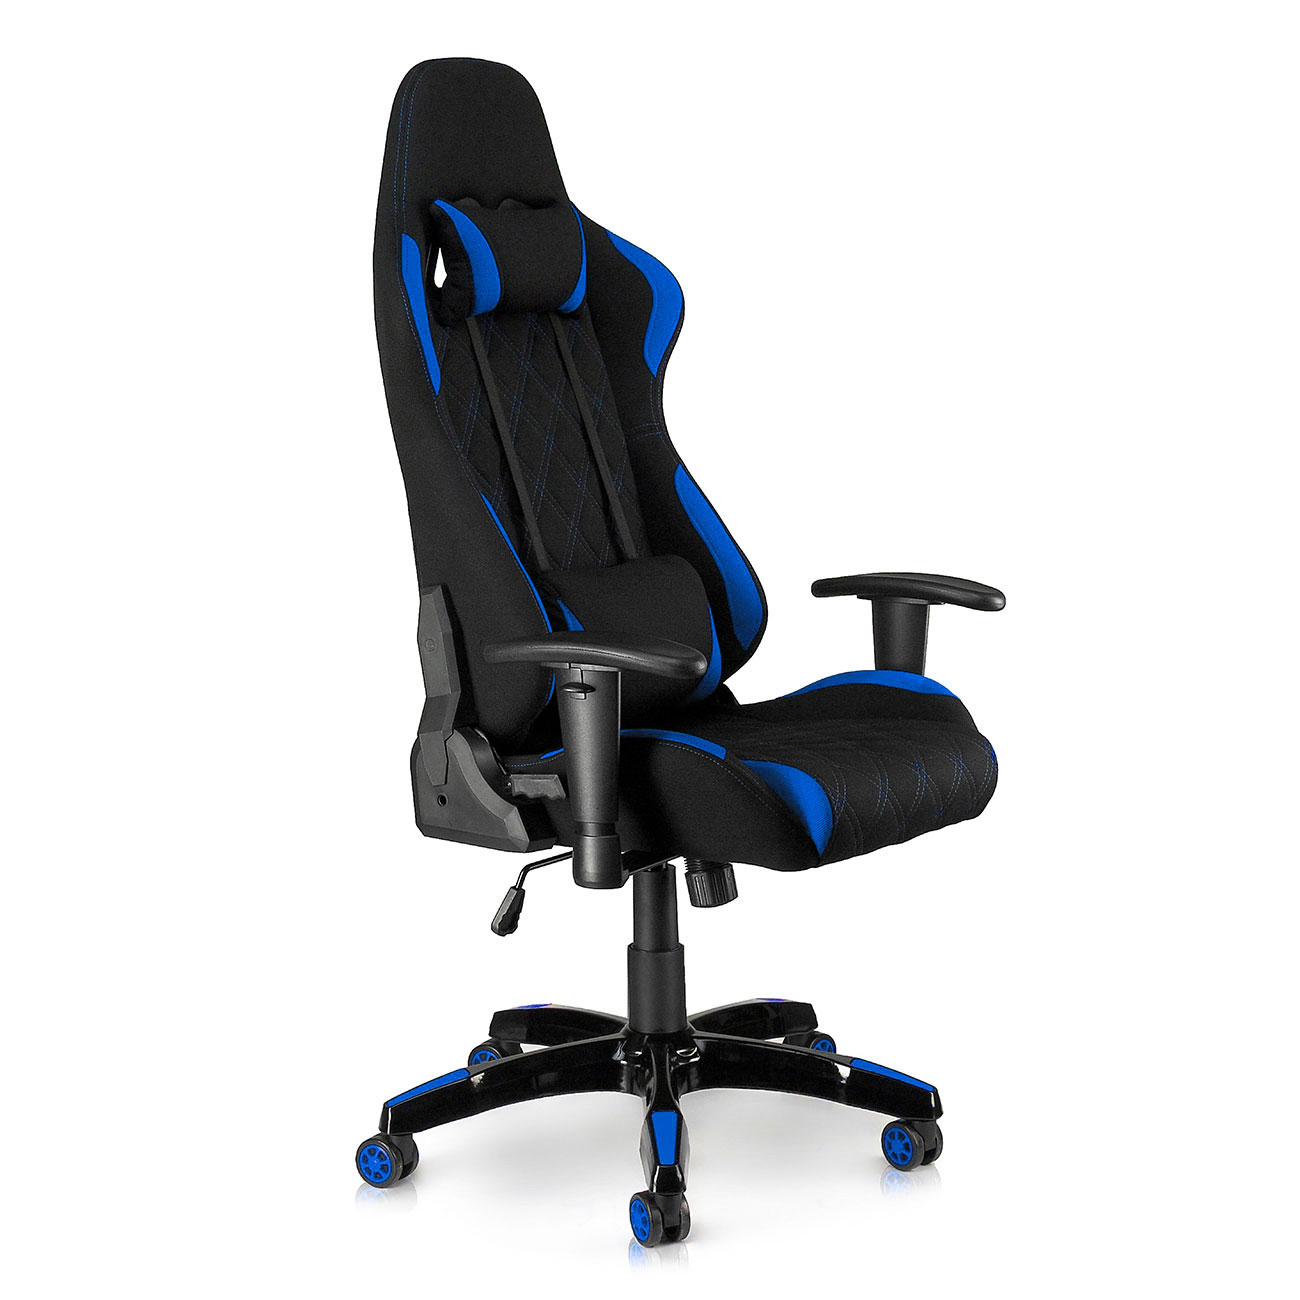 Racing Desk Chair My Sit Office Chair Racing Chair Blue Racer Office Racing